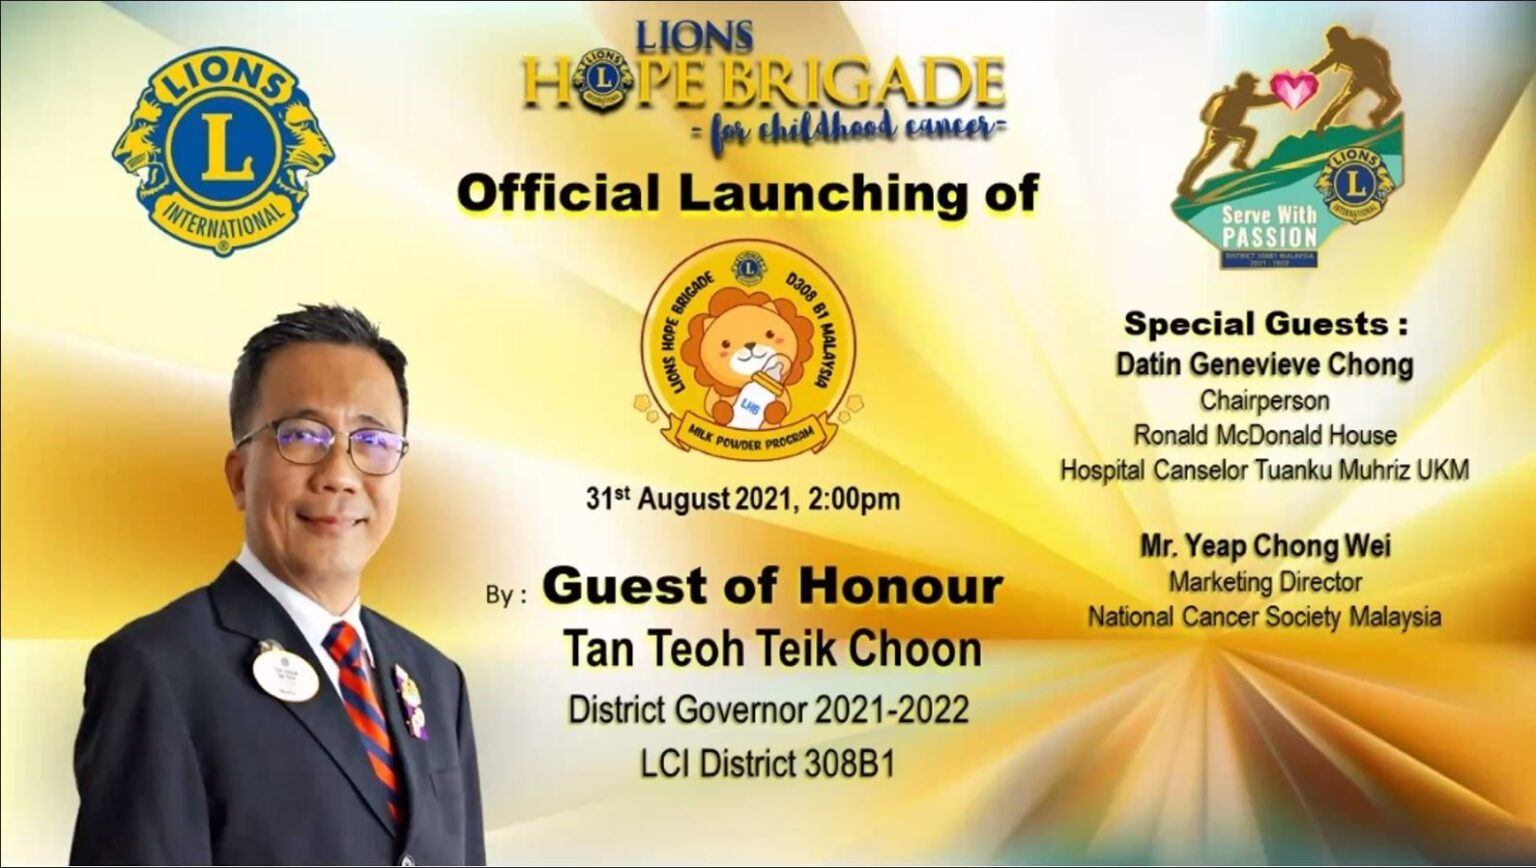 Official Launching of LHB Milk Powder Program by District Governor Tan Teoh Teik Choon on 31st August 2021